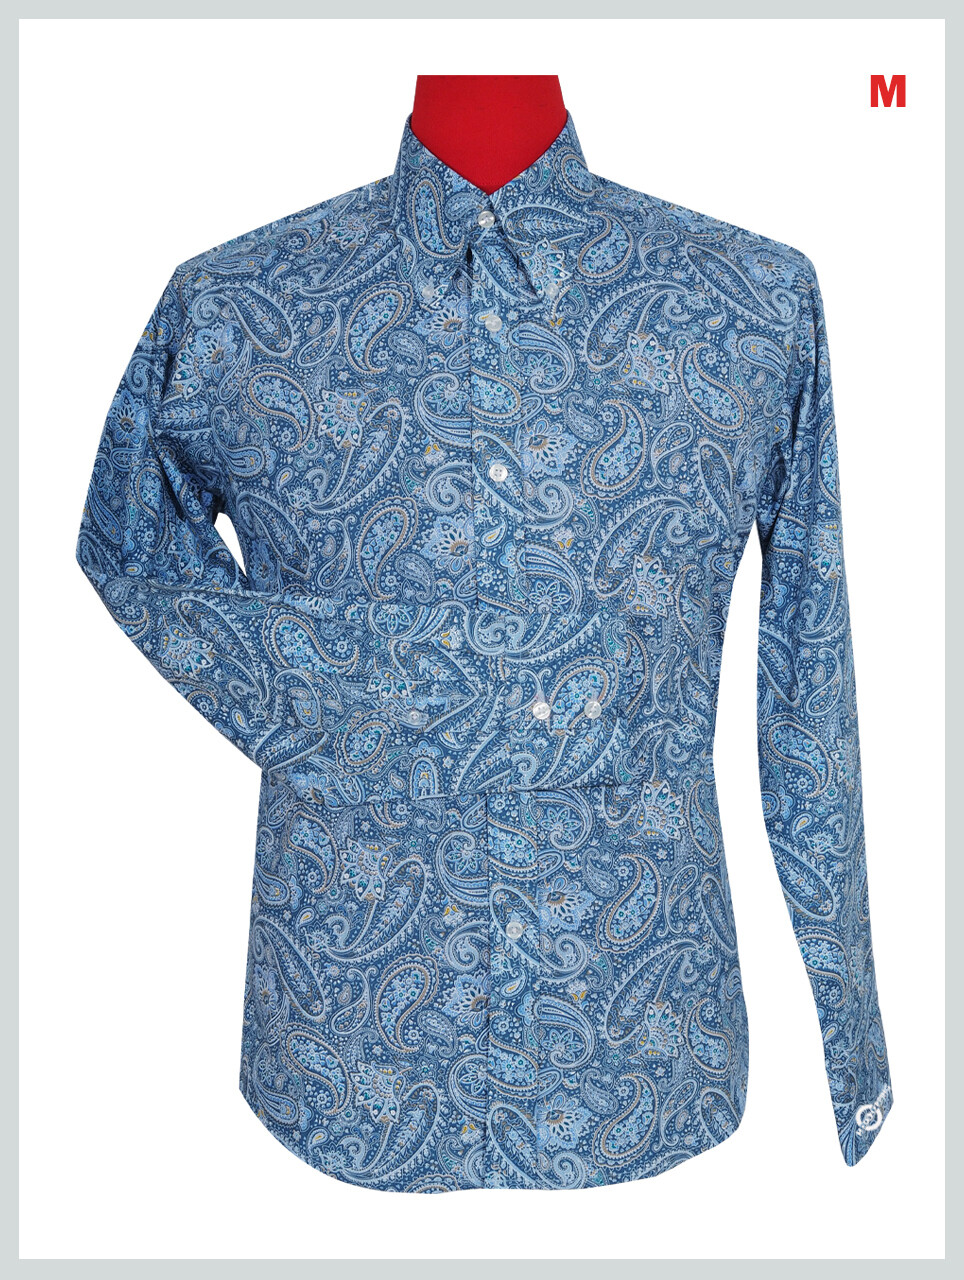 This Shirt Only  Blue Multi-Color Paisley Shirt